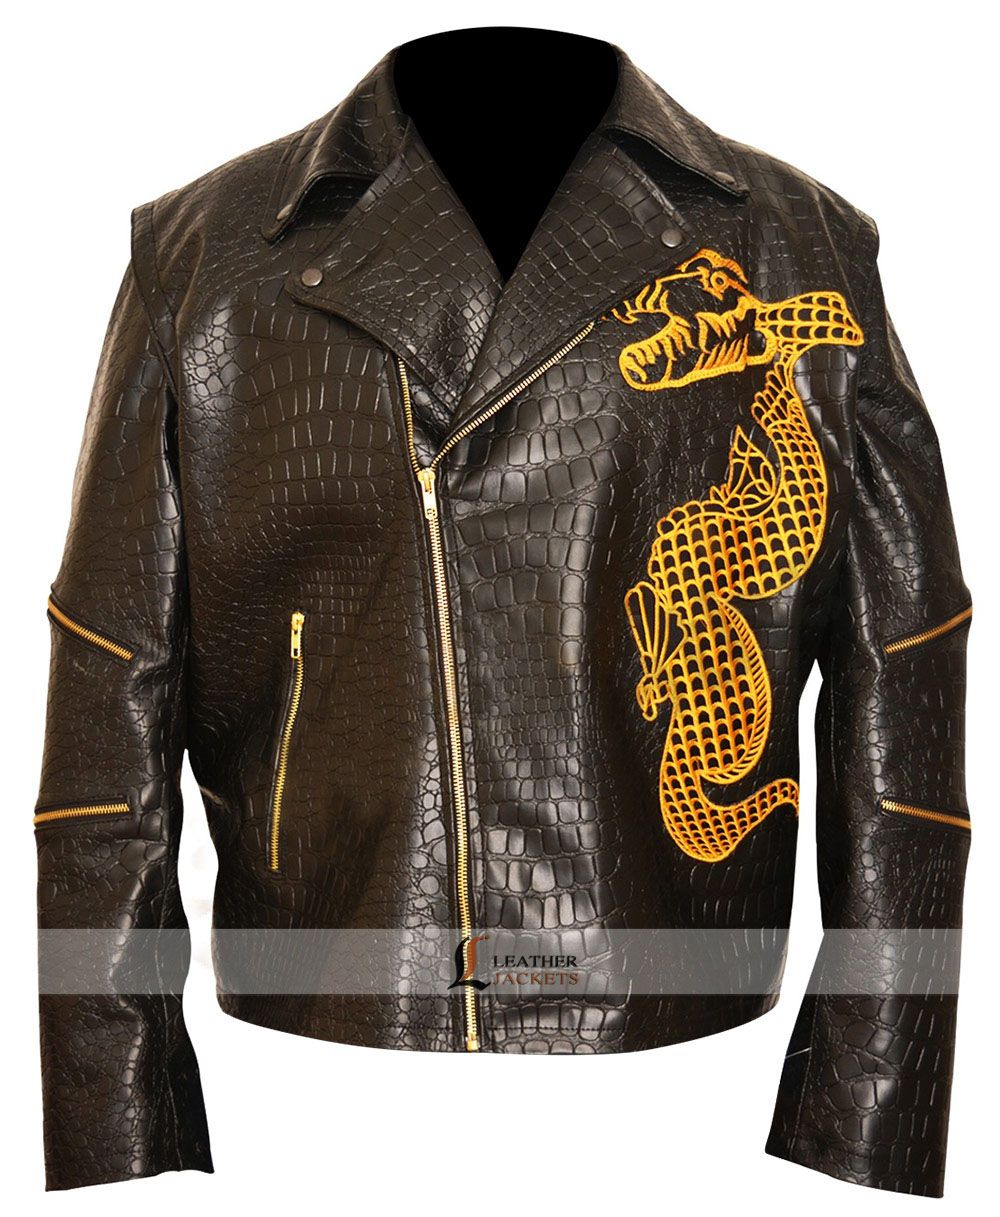 amazing jacke on cheapest price ever, visit  http://www.leathersjackets.com/killer-croc-suicide-squad-waylon-jones-jacket.html